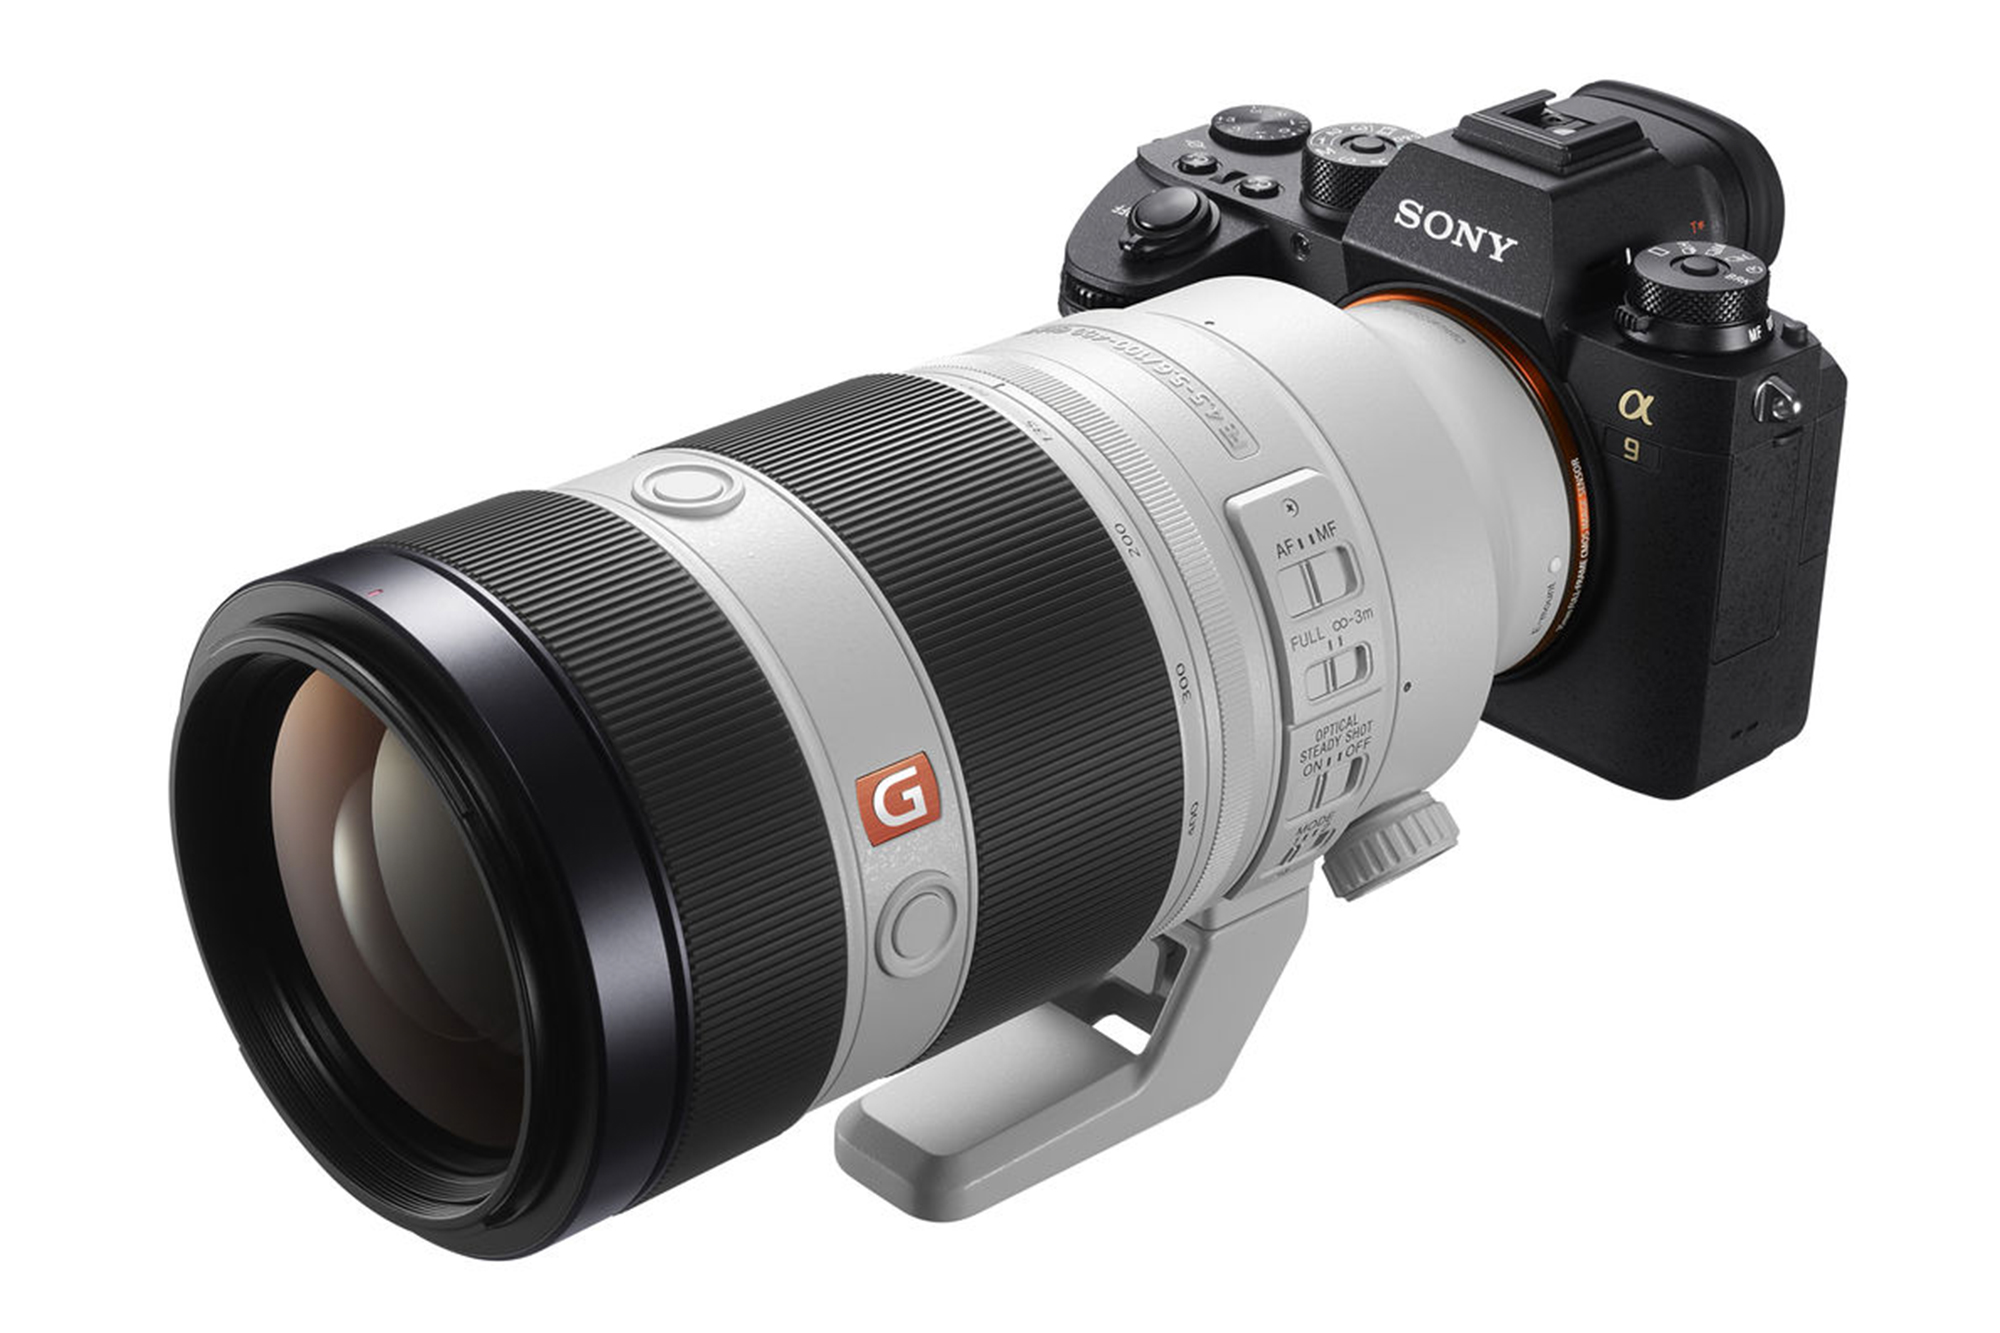 New Sigma 100-400mm FE Might Be Coming Soon for Sony Mirrorless (Rumor)